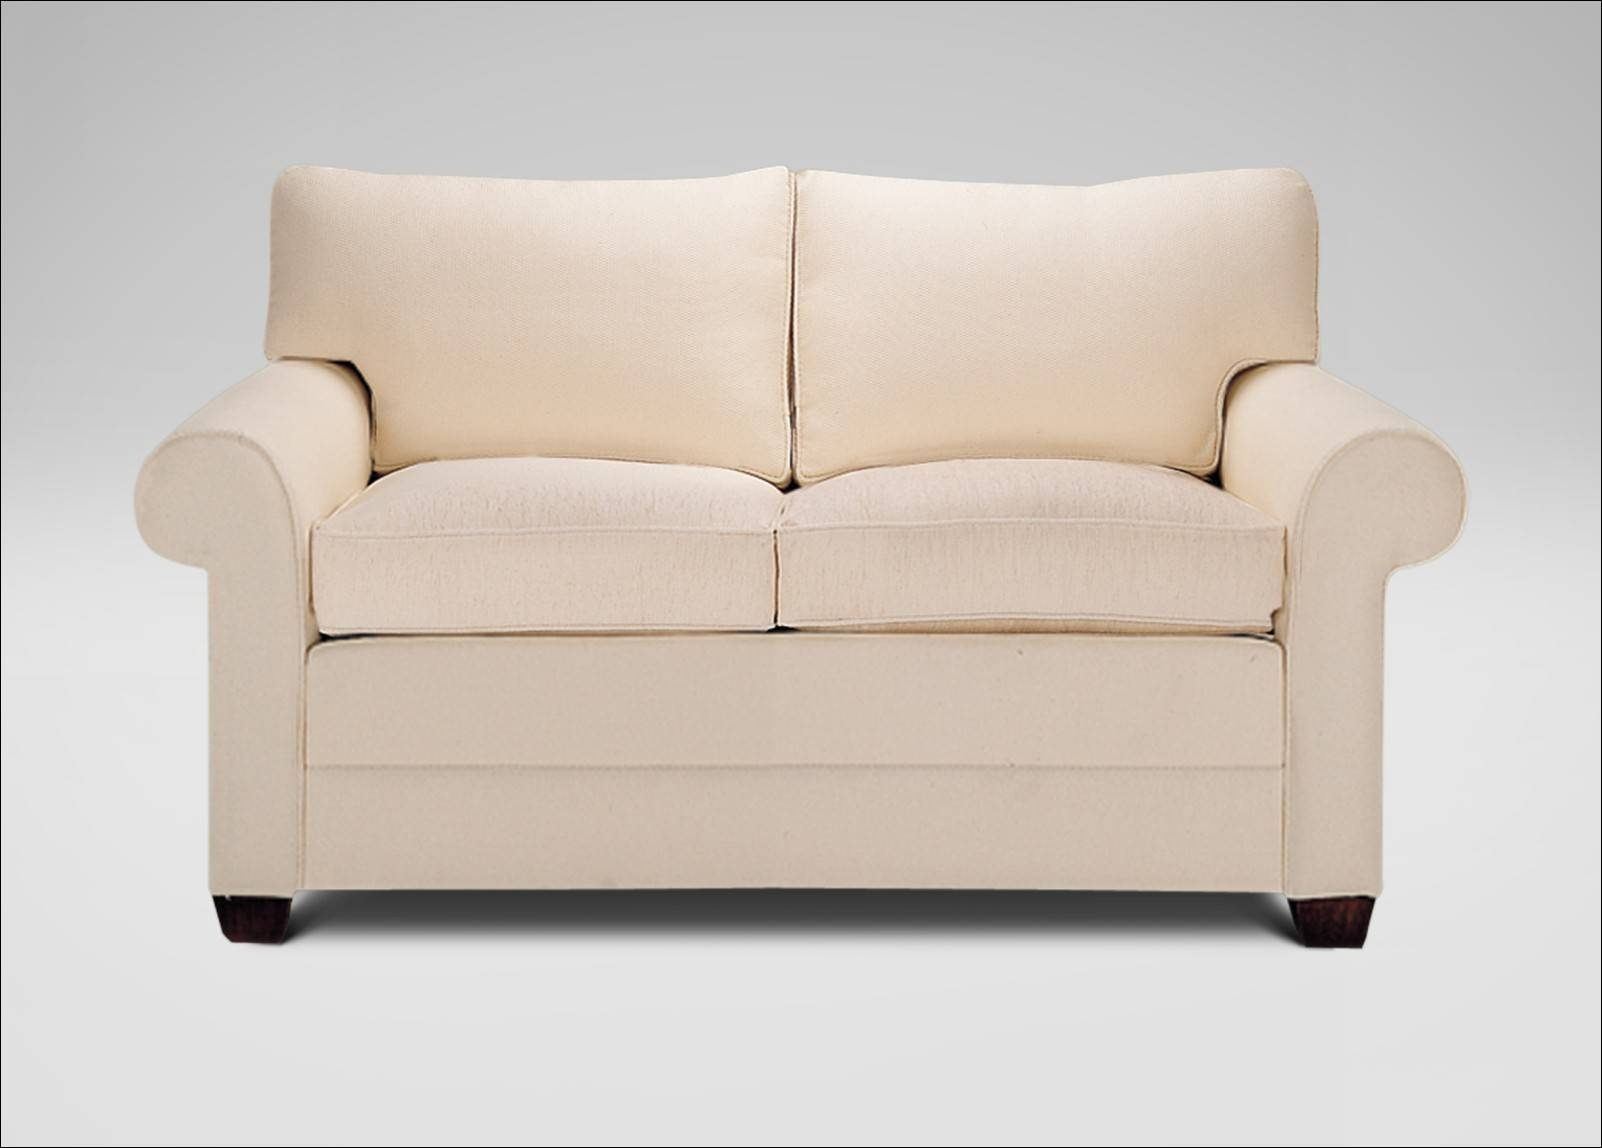 Furniture : Ethan Allen Near Me Ethan Allen Hyde Sofa Ethan Allen throughout Ethan Allen Chesterfield Sofas (Image 7 of 15)